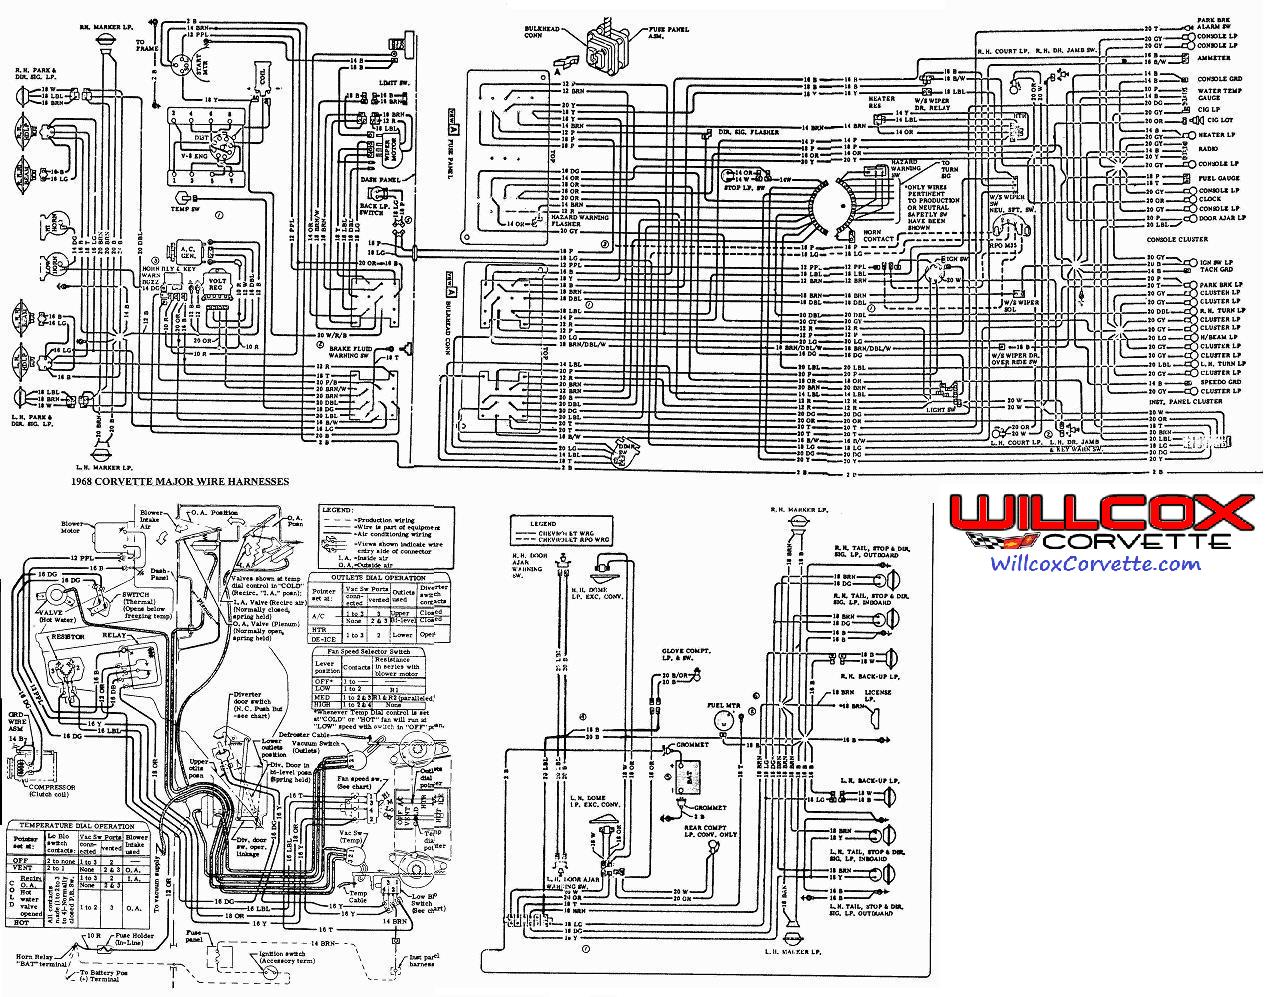 1966 Corvette Wiring Diagram 1968 Corvette Wiper Motor Wiring